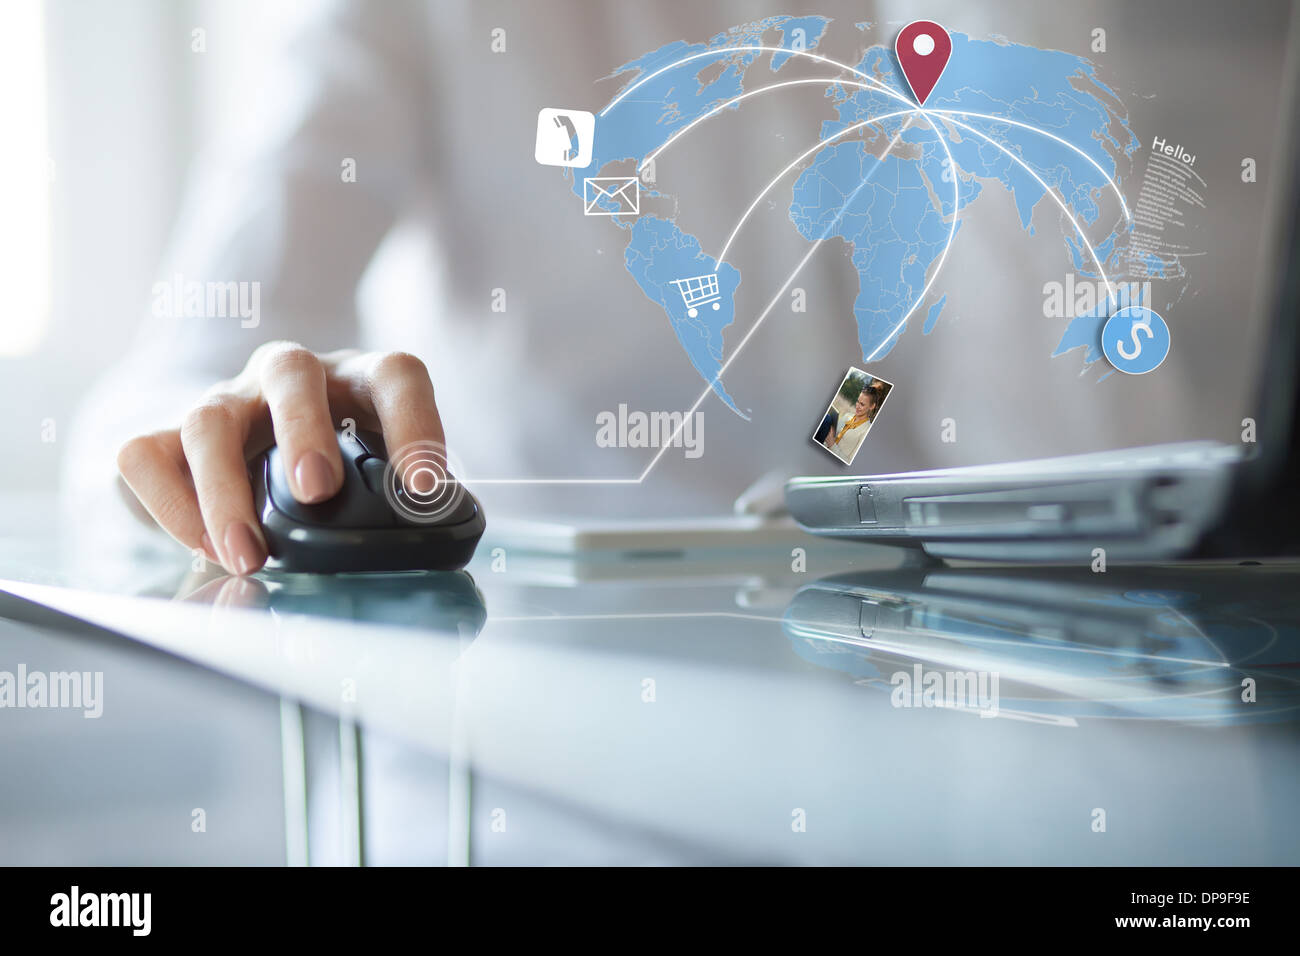 Concept of using wireless technology, online buying, receive and download photo and email, video call - Stock Image